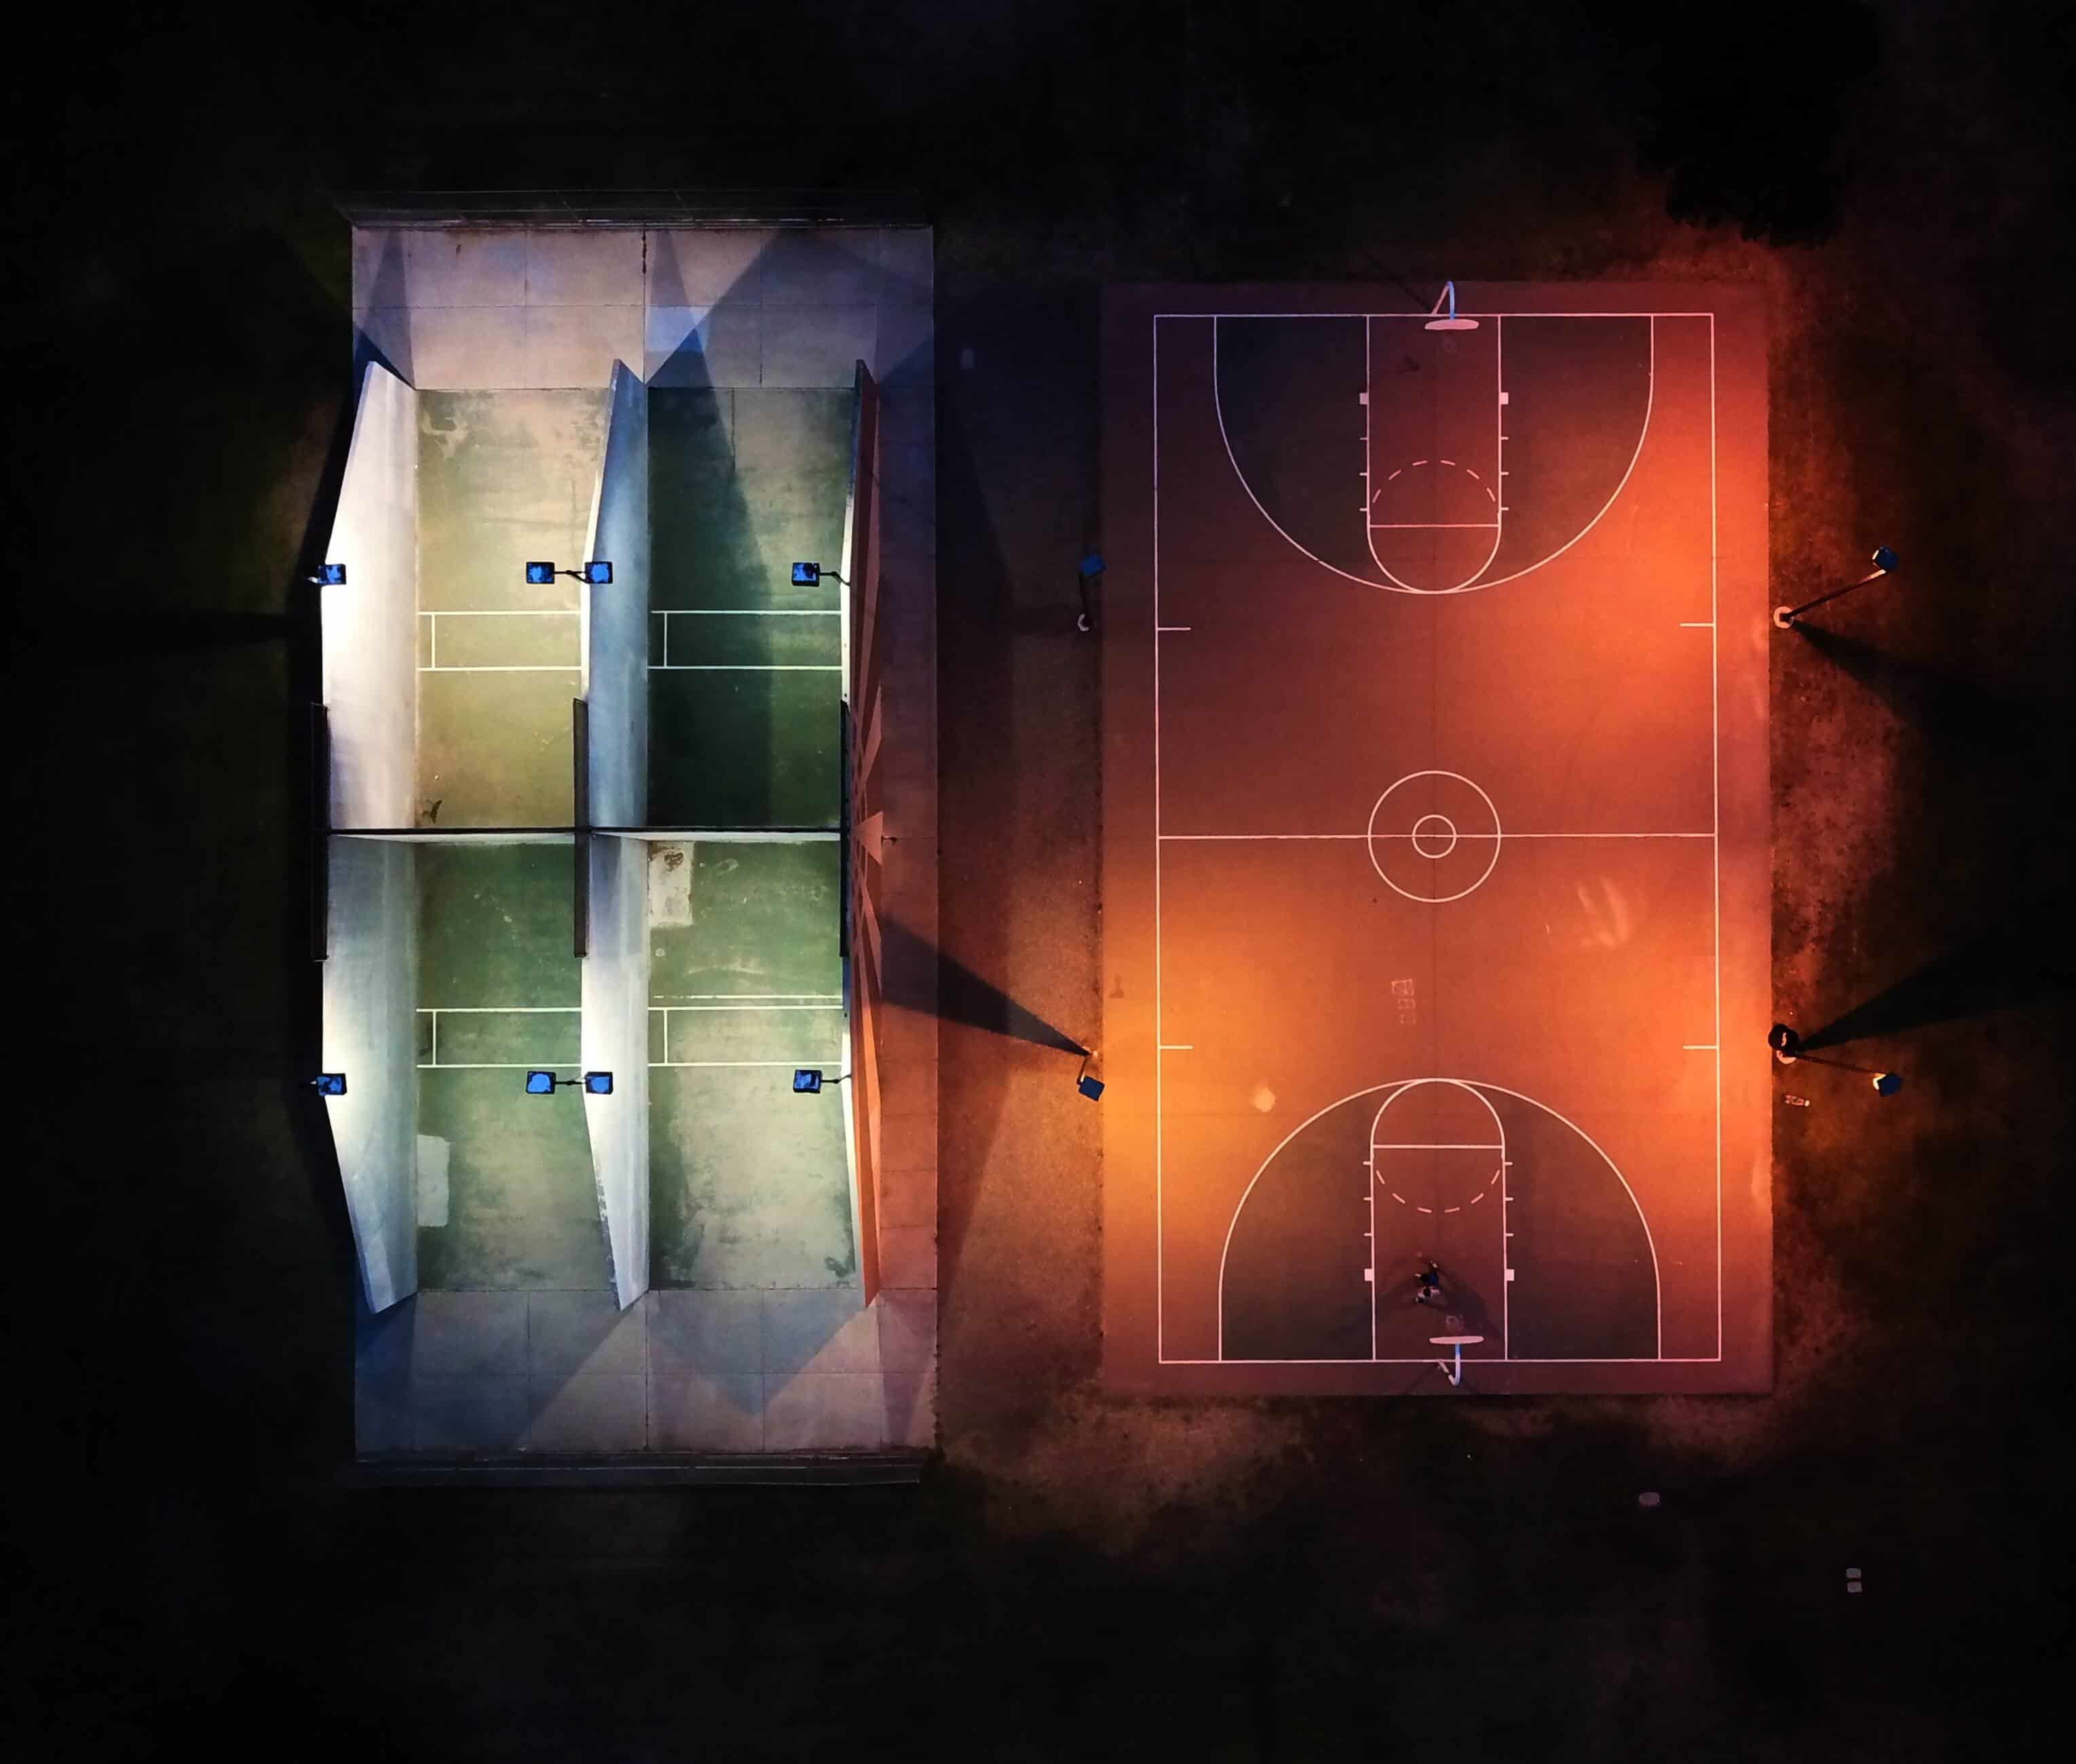 Top 9 Best LED Flood Light Options for an Sport Court Outdoor in 2019